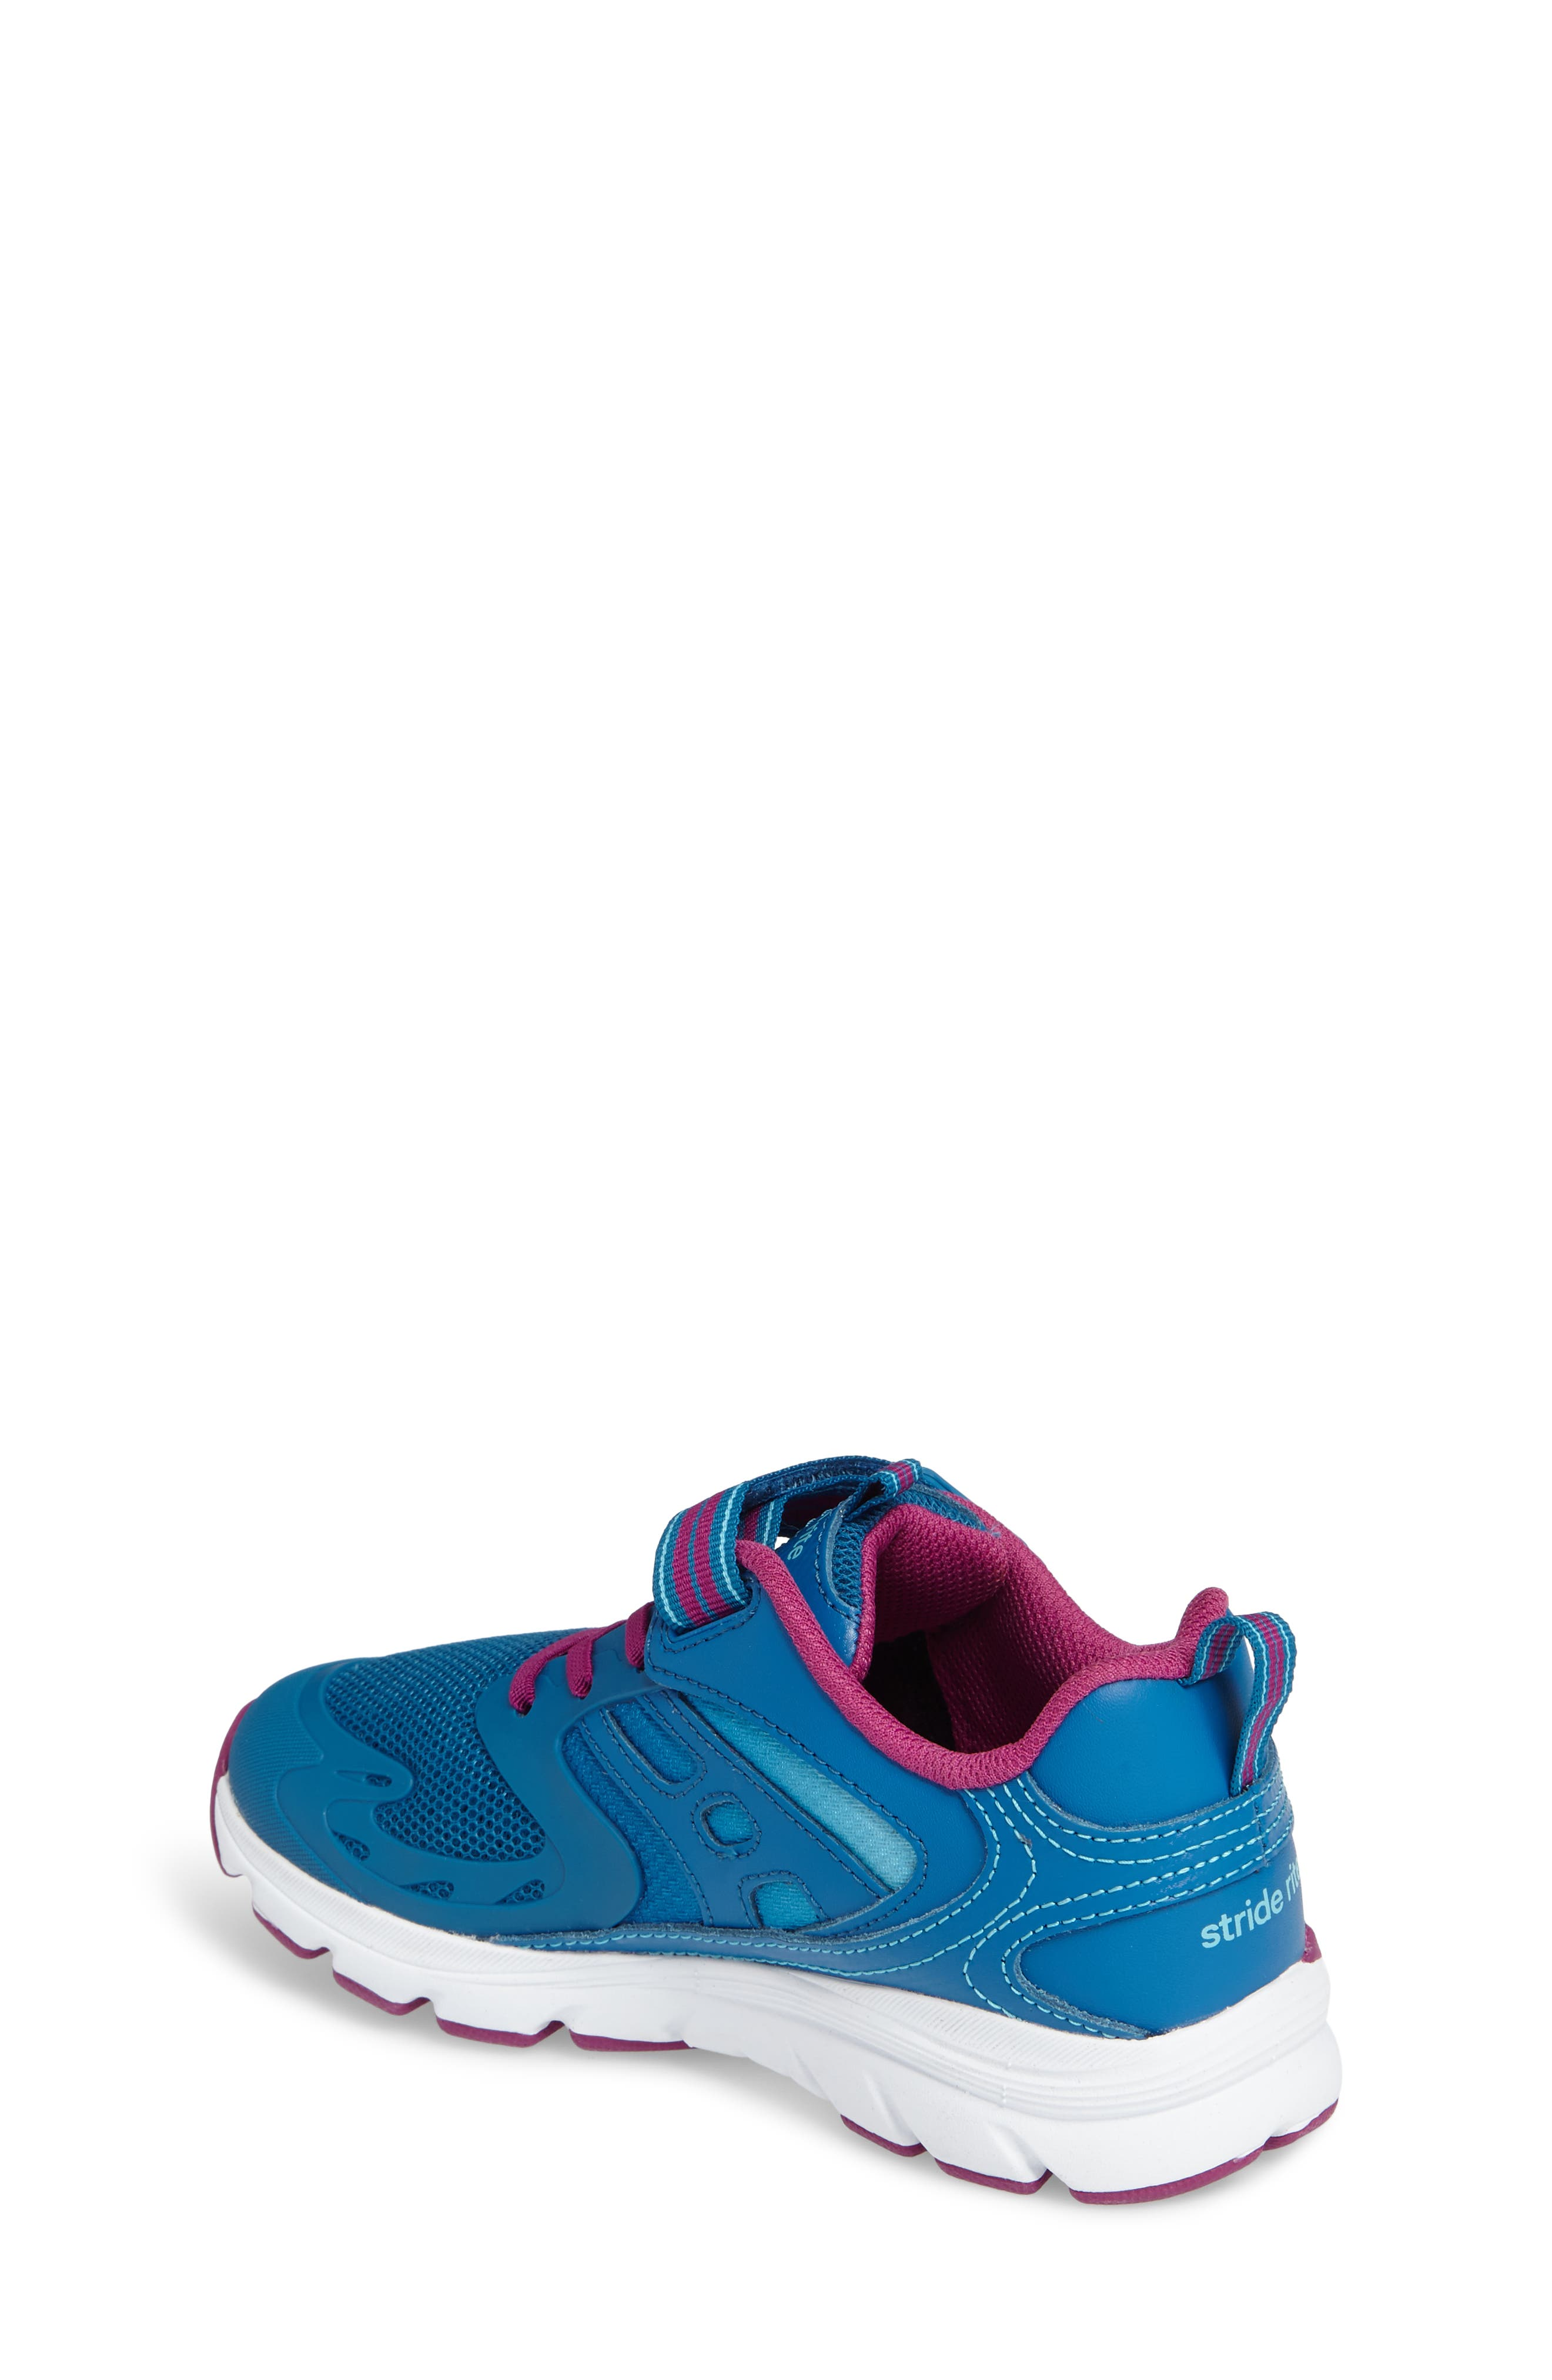 Made 2 Play<sup>®</sup> Cannan Sneaker,                             Alternate thumbnail 2, color,                             400